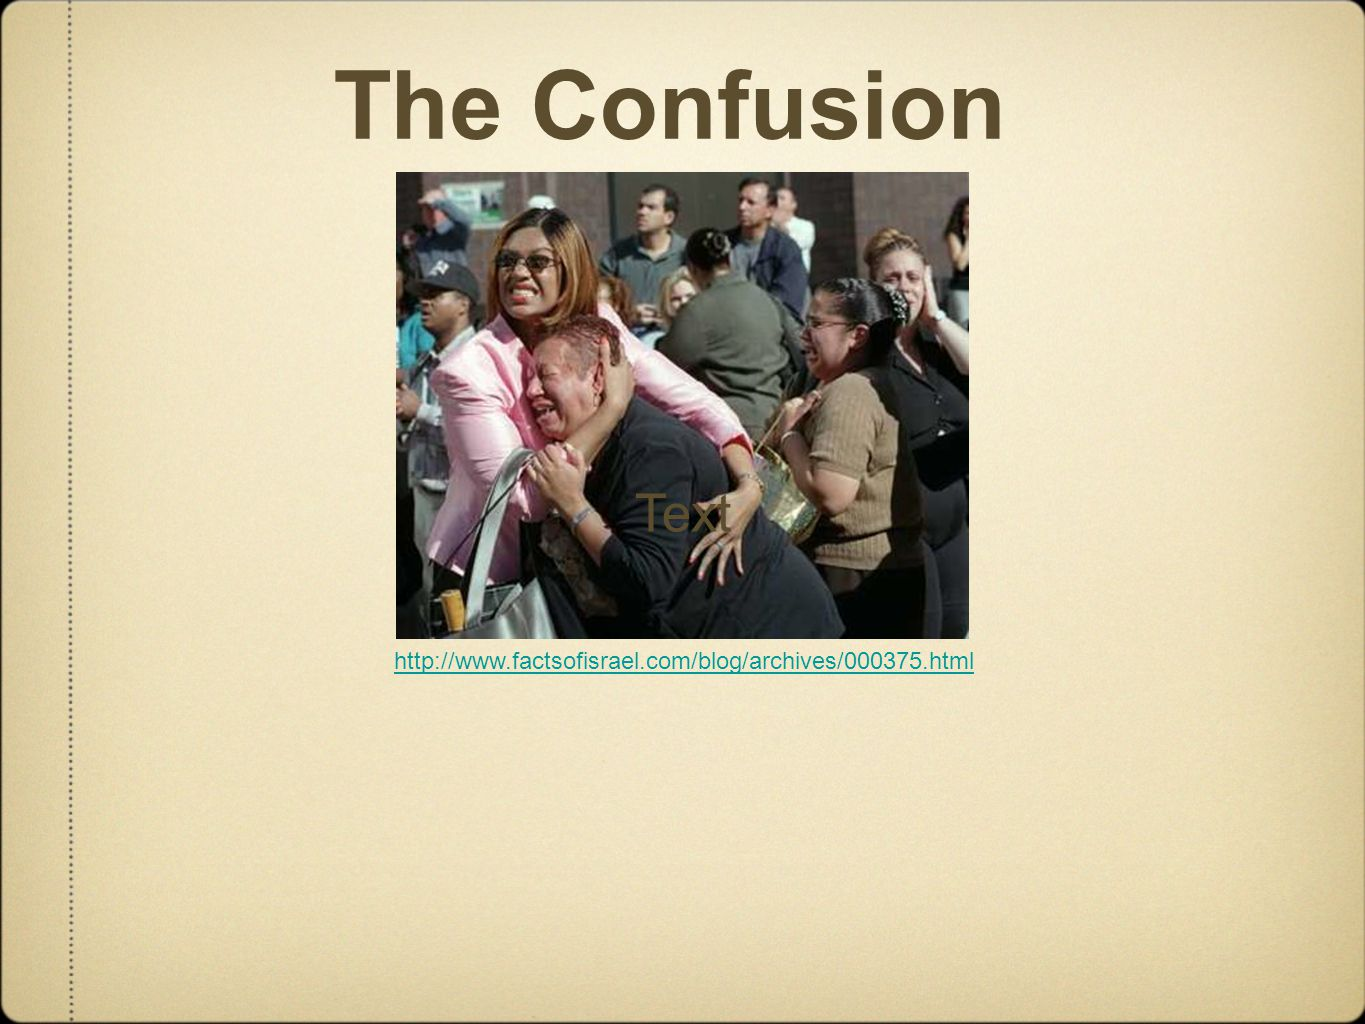 The Confusion Text http://www.factsofisrael.com/blog/archives/000375.html